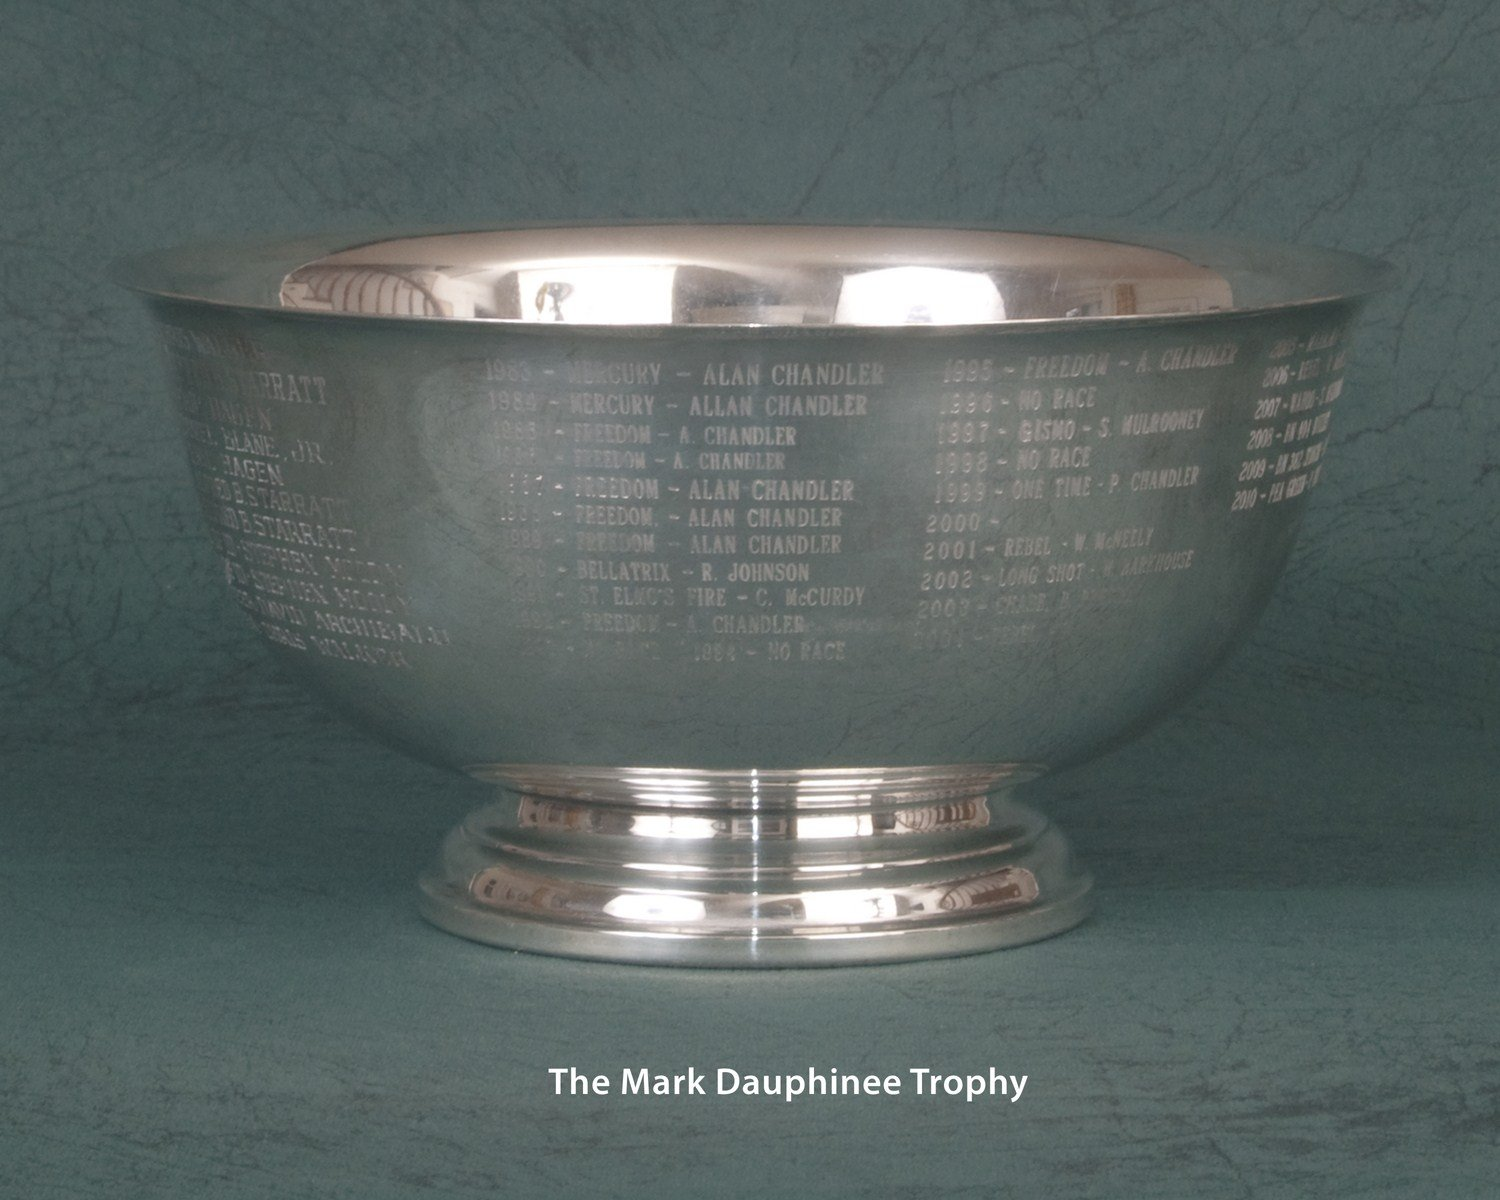 CYC July Trophies | The Mark Dauphinee Trophy